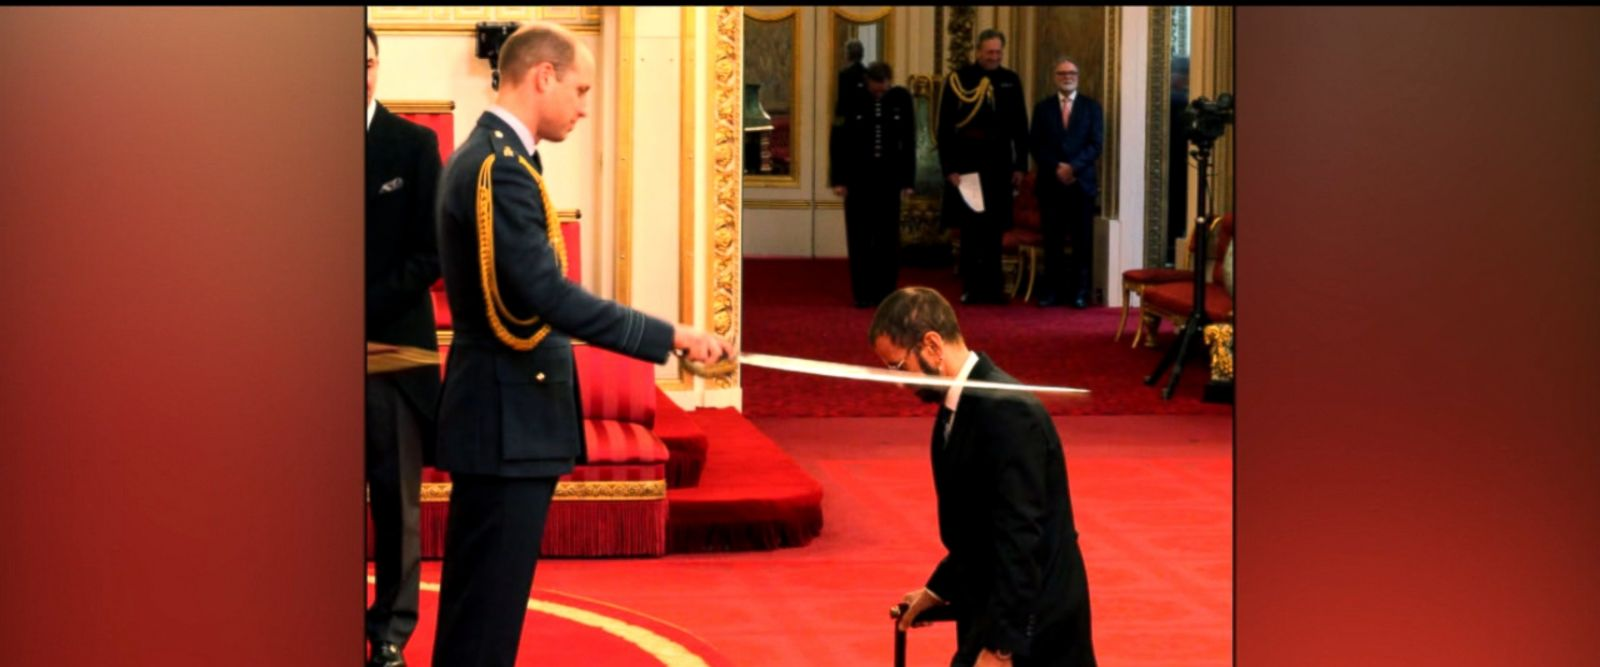 His bandmate Sir Paul McCartney was knighted in 1997.